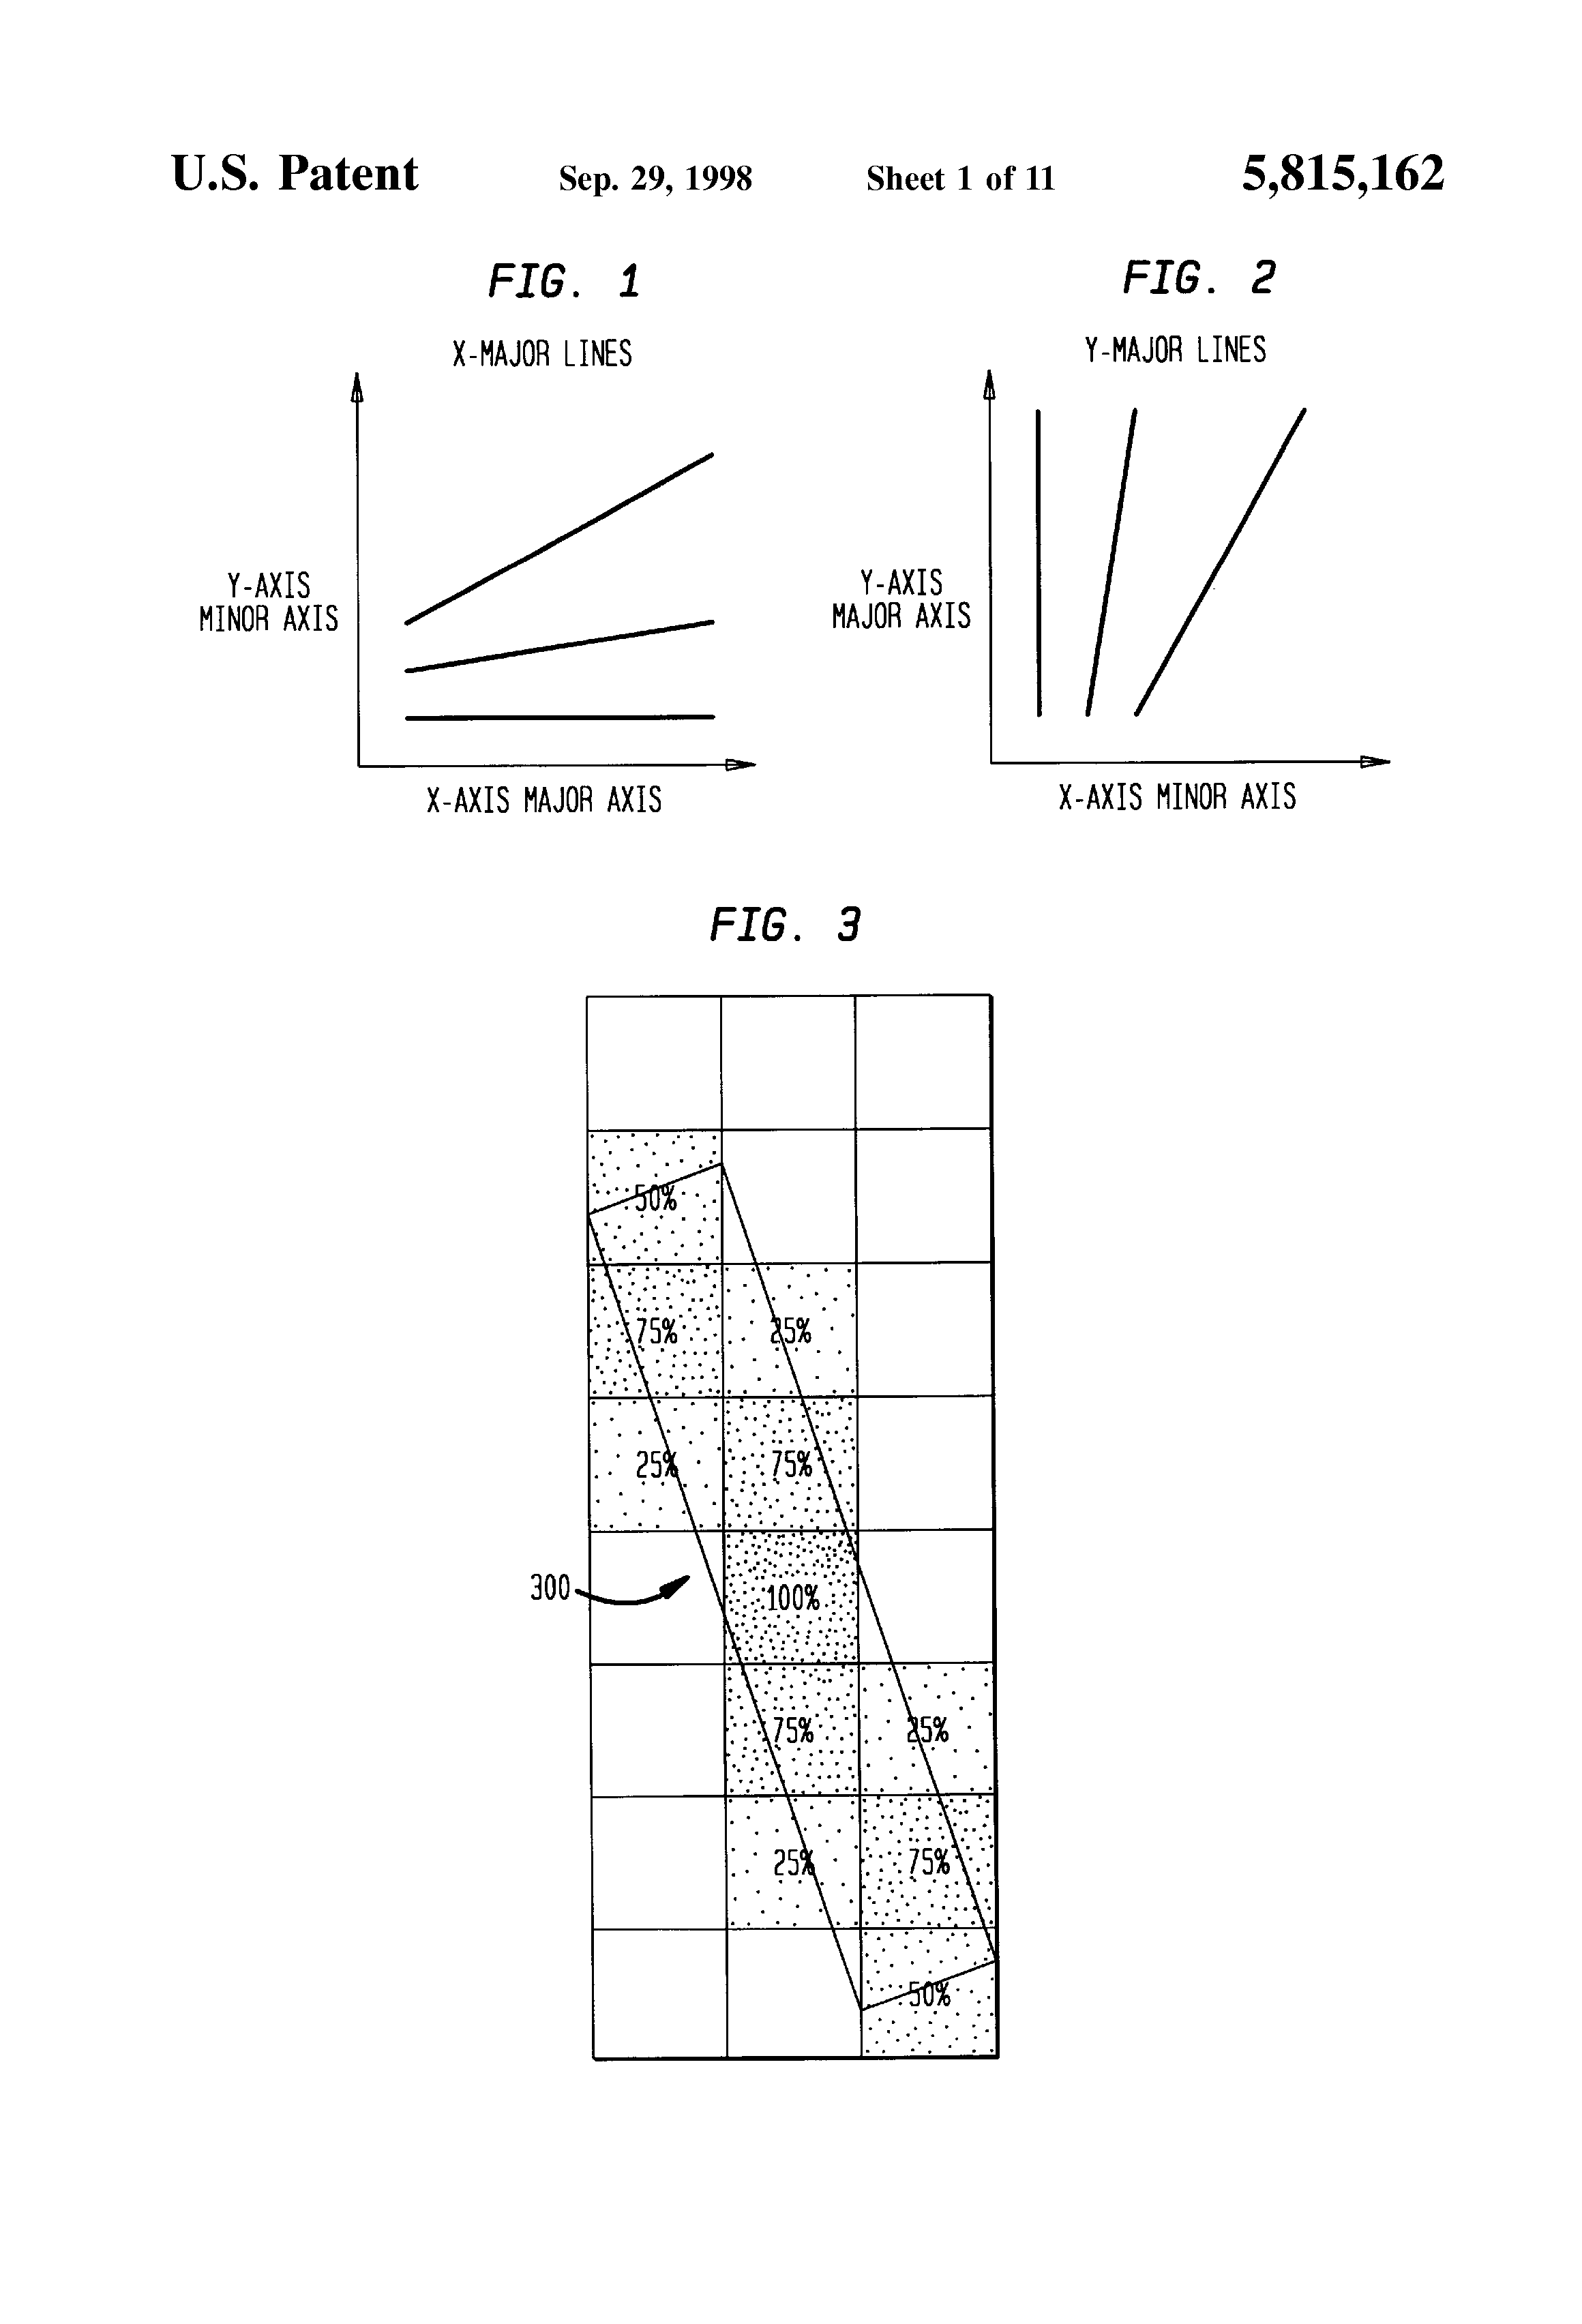 Bresenham Line Drawing Algorithm For Negative Slope : Patent us system and method of drawing anti